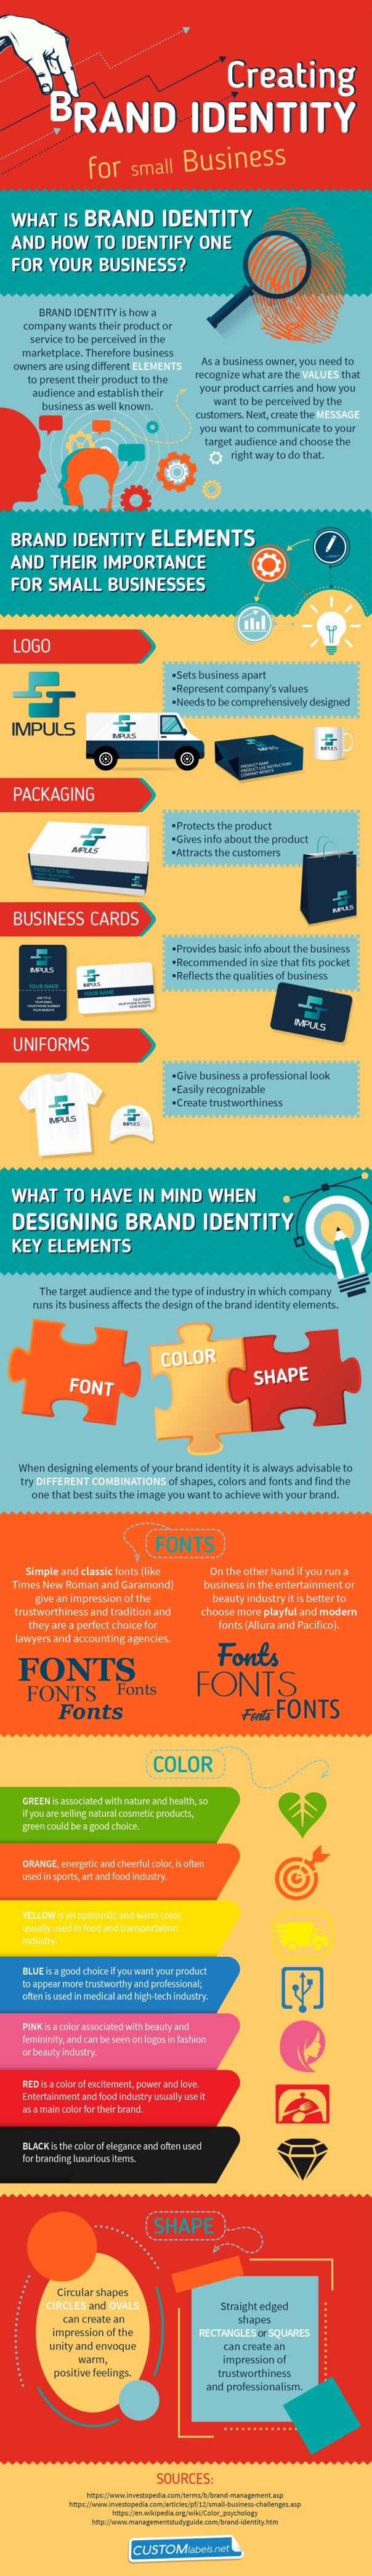 https://i0.wp.com/customlabels.net/infographics/creating-brand-identity-for-small-business.jpg?w=604&ssl=1